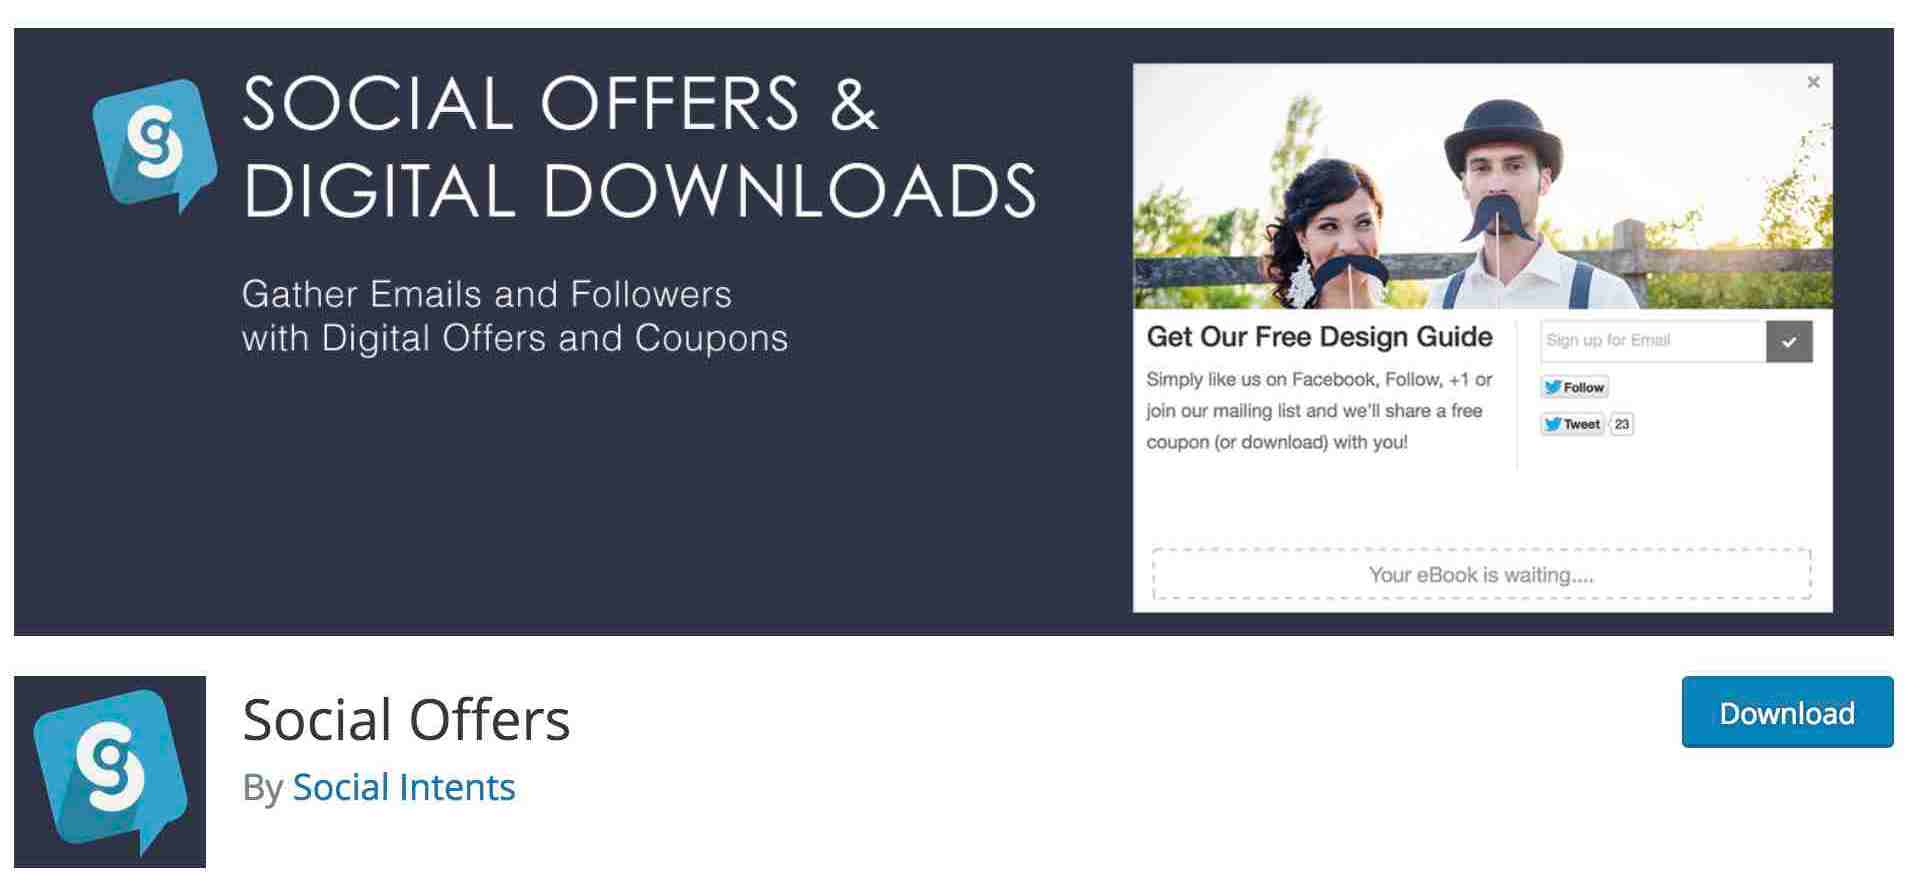 Social Offers Coupons and Other Incentives